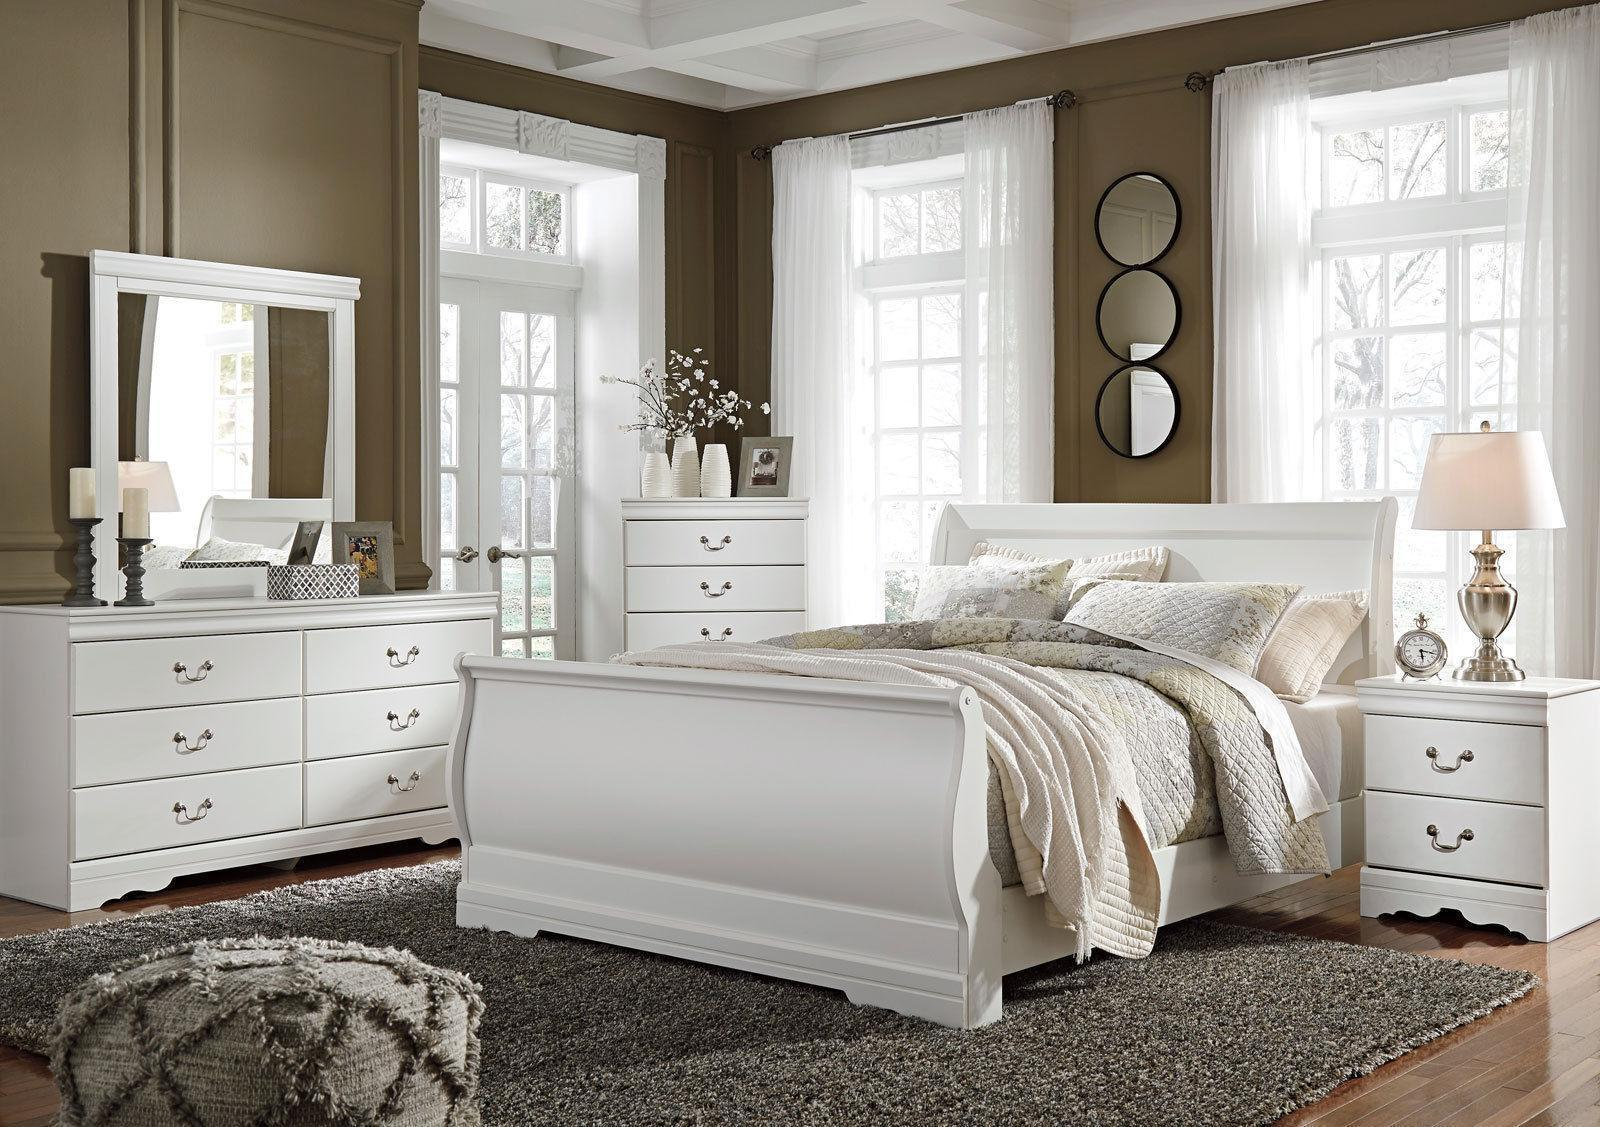 Stanford 5 piece new traditional white bedroom set furniture w queen sleigh bed bedroom sets for 5 piece queen sleigh bedroom set